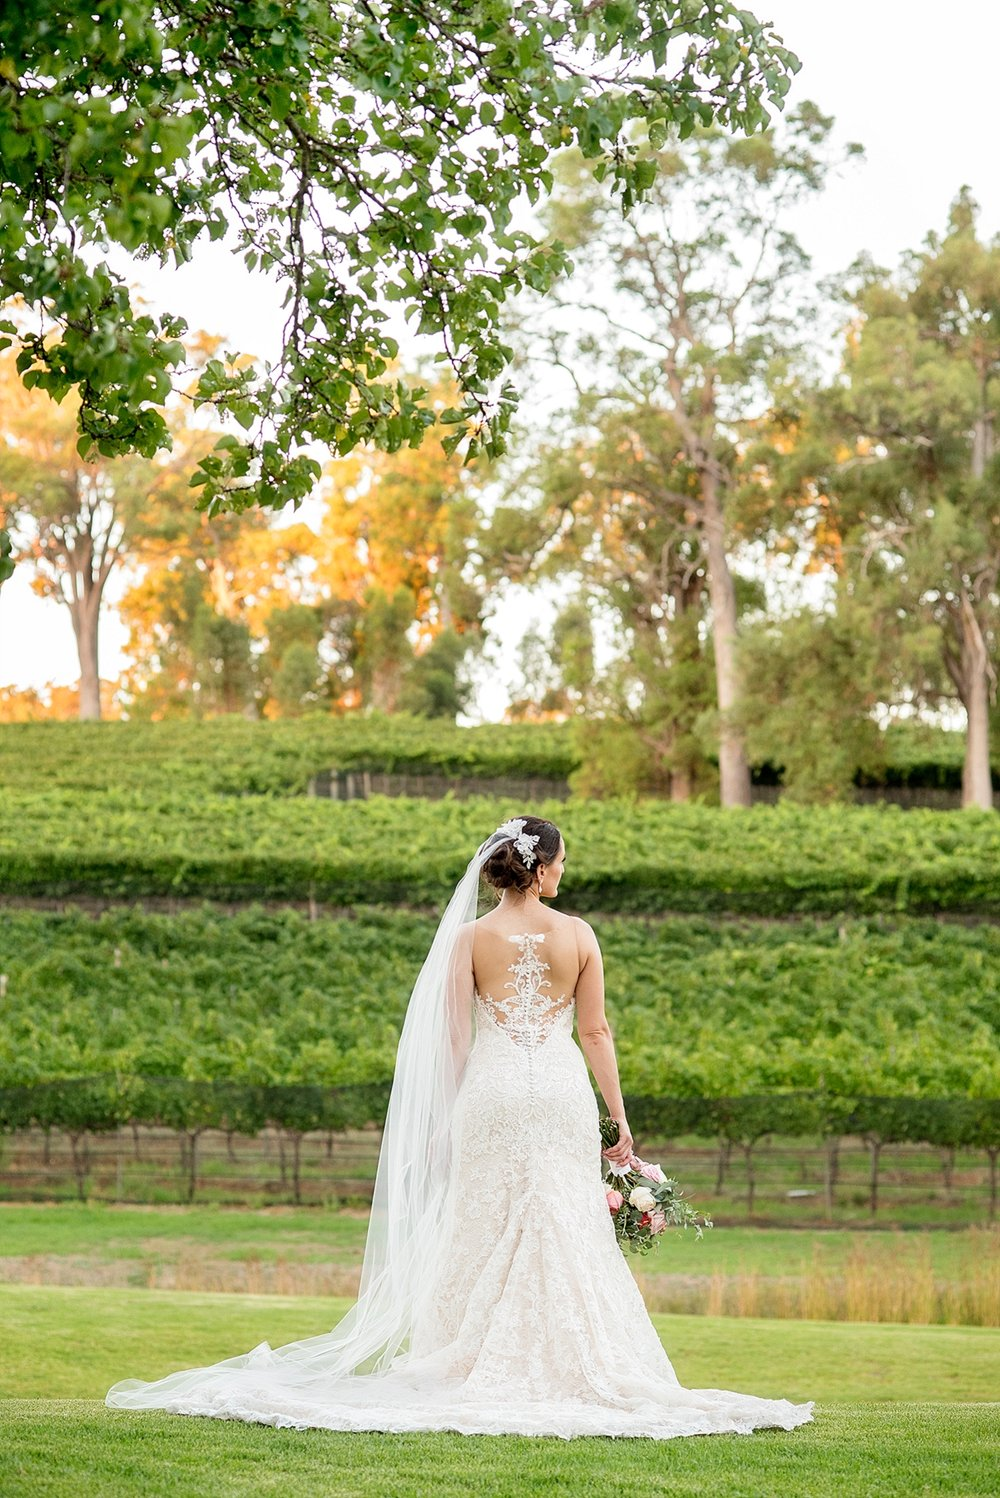 64_millbrook winery wedding perth bride in vineyard .jpg